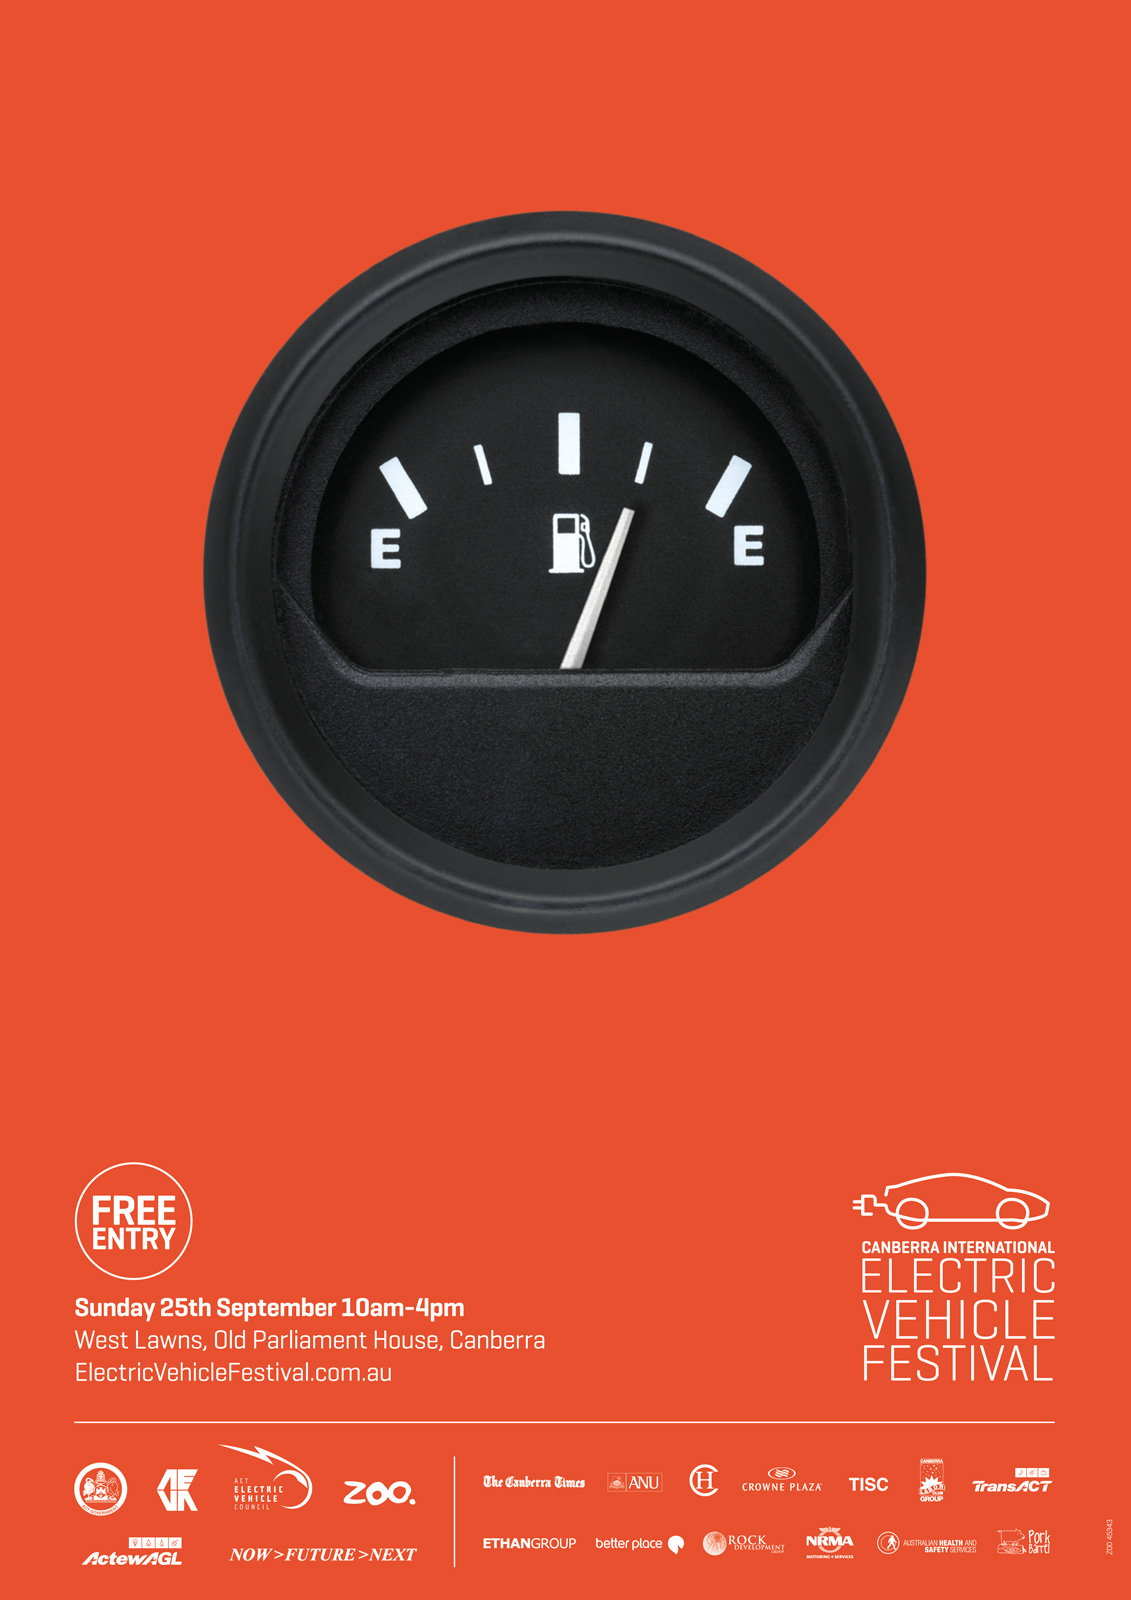 "Canberra International Electric Vehicle Festival: Fuel Gauge | Ads of the Worldâ""¢"